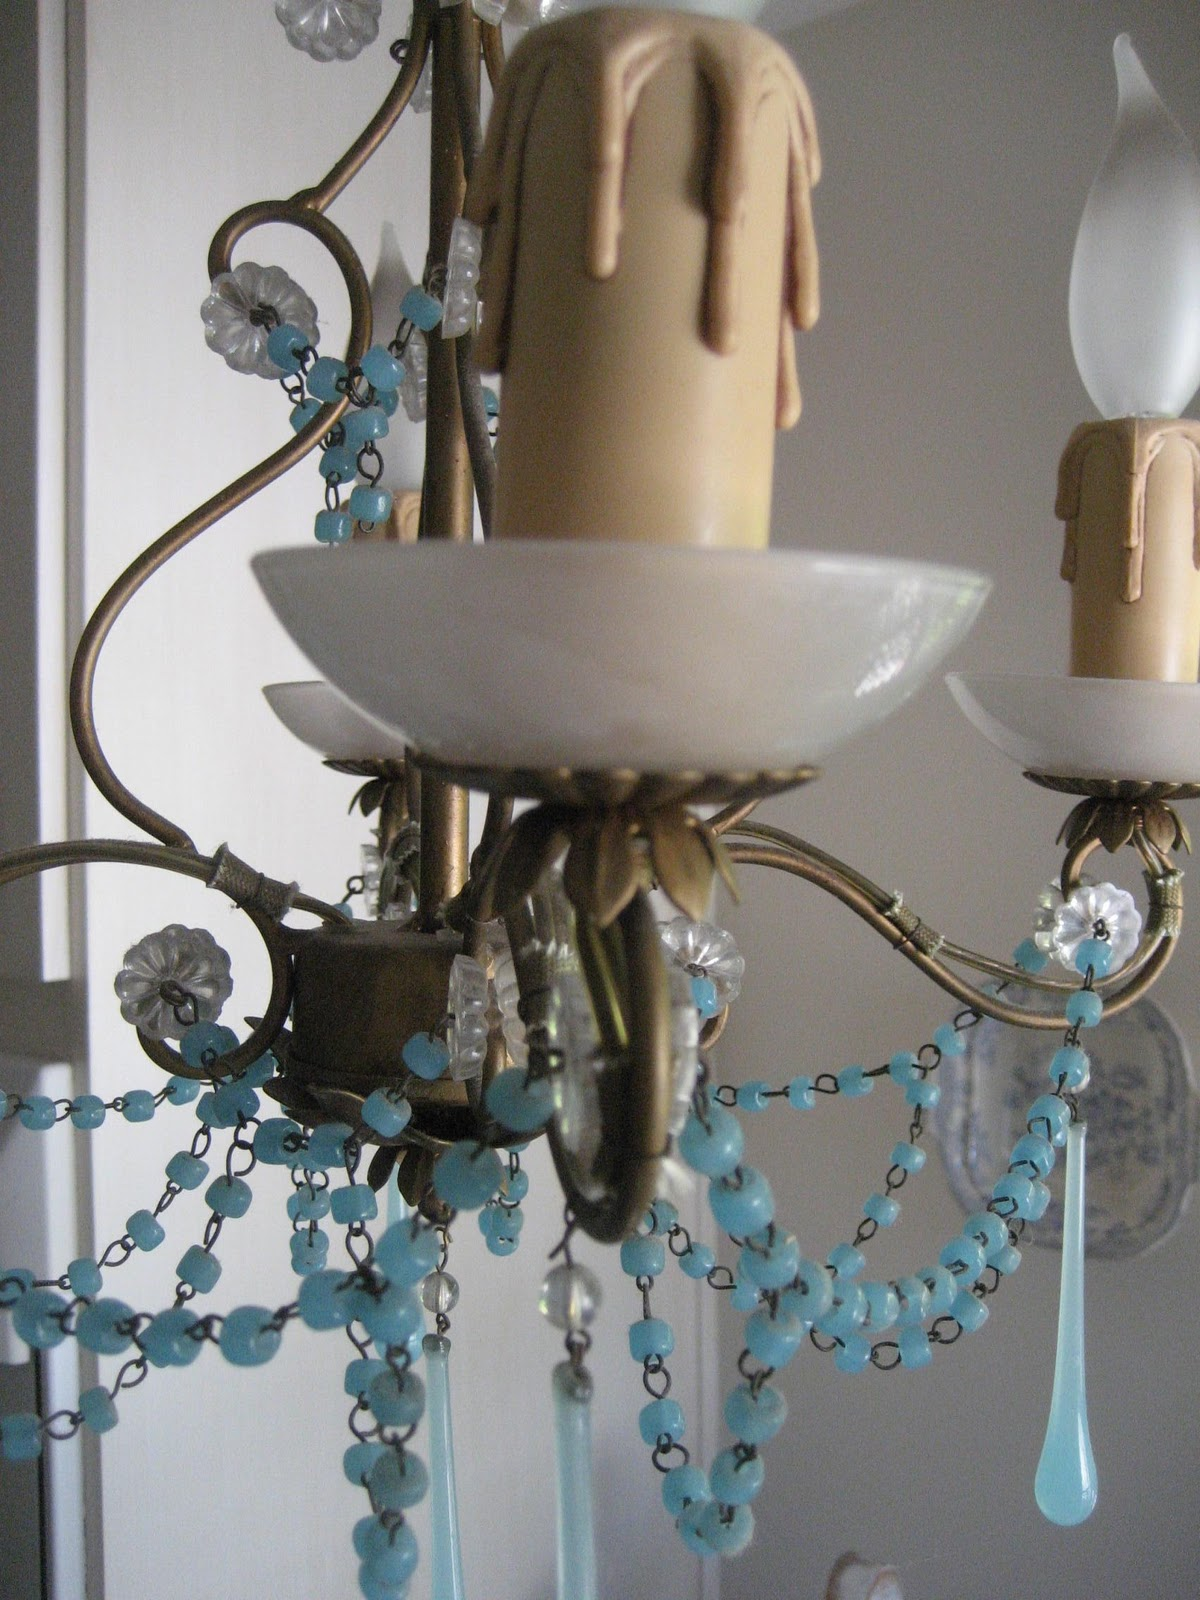 She Has One With The Same Kind Of Glass And Wanted To Know Where Could Get More Drops Add Her Chandelier